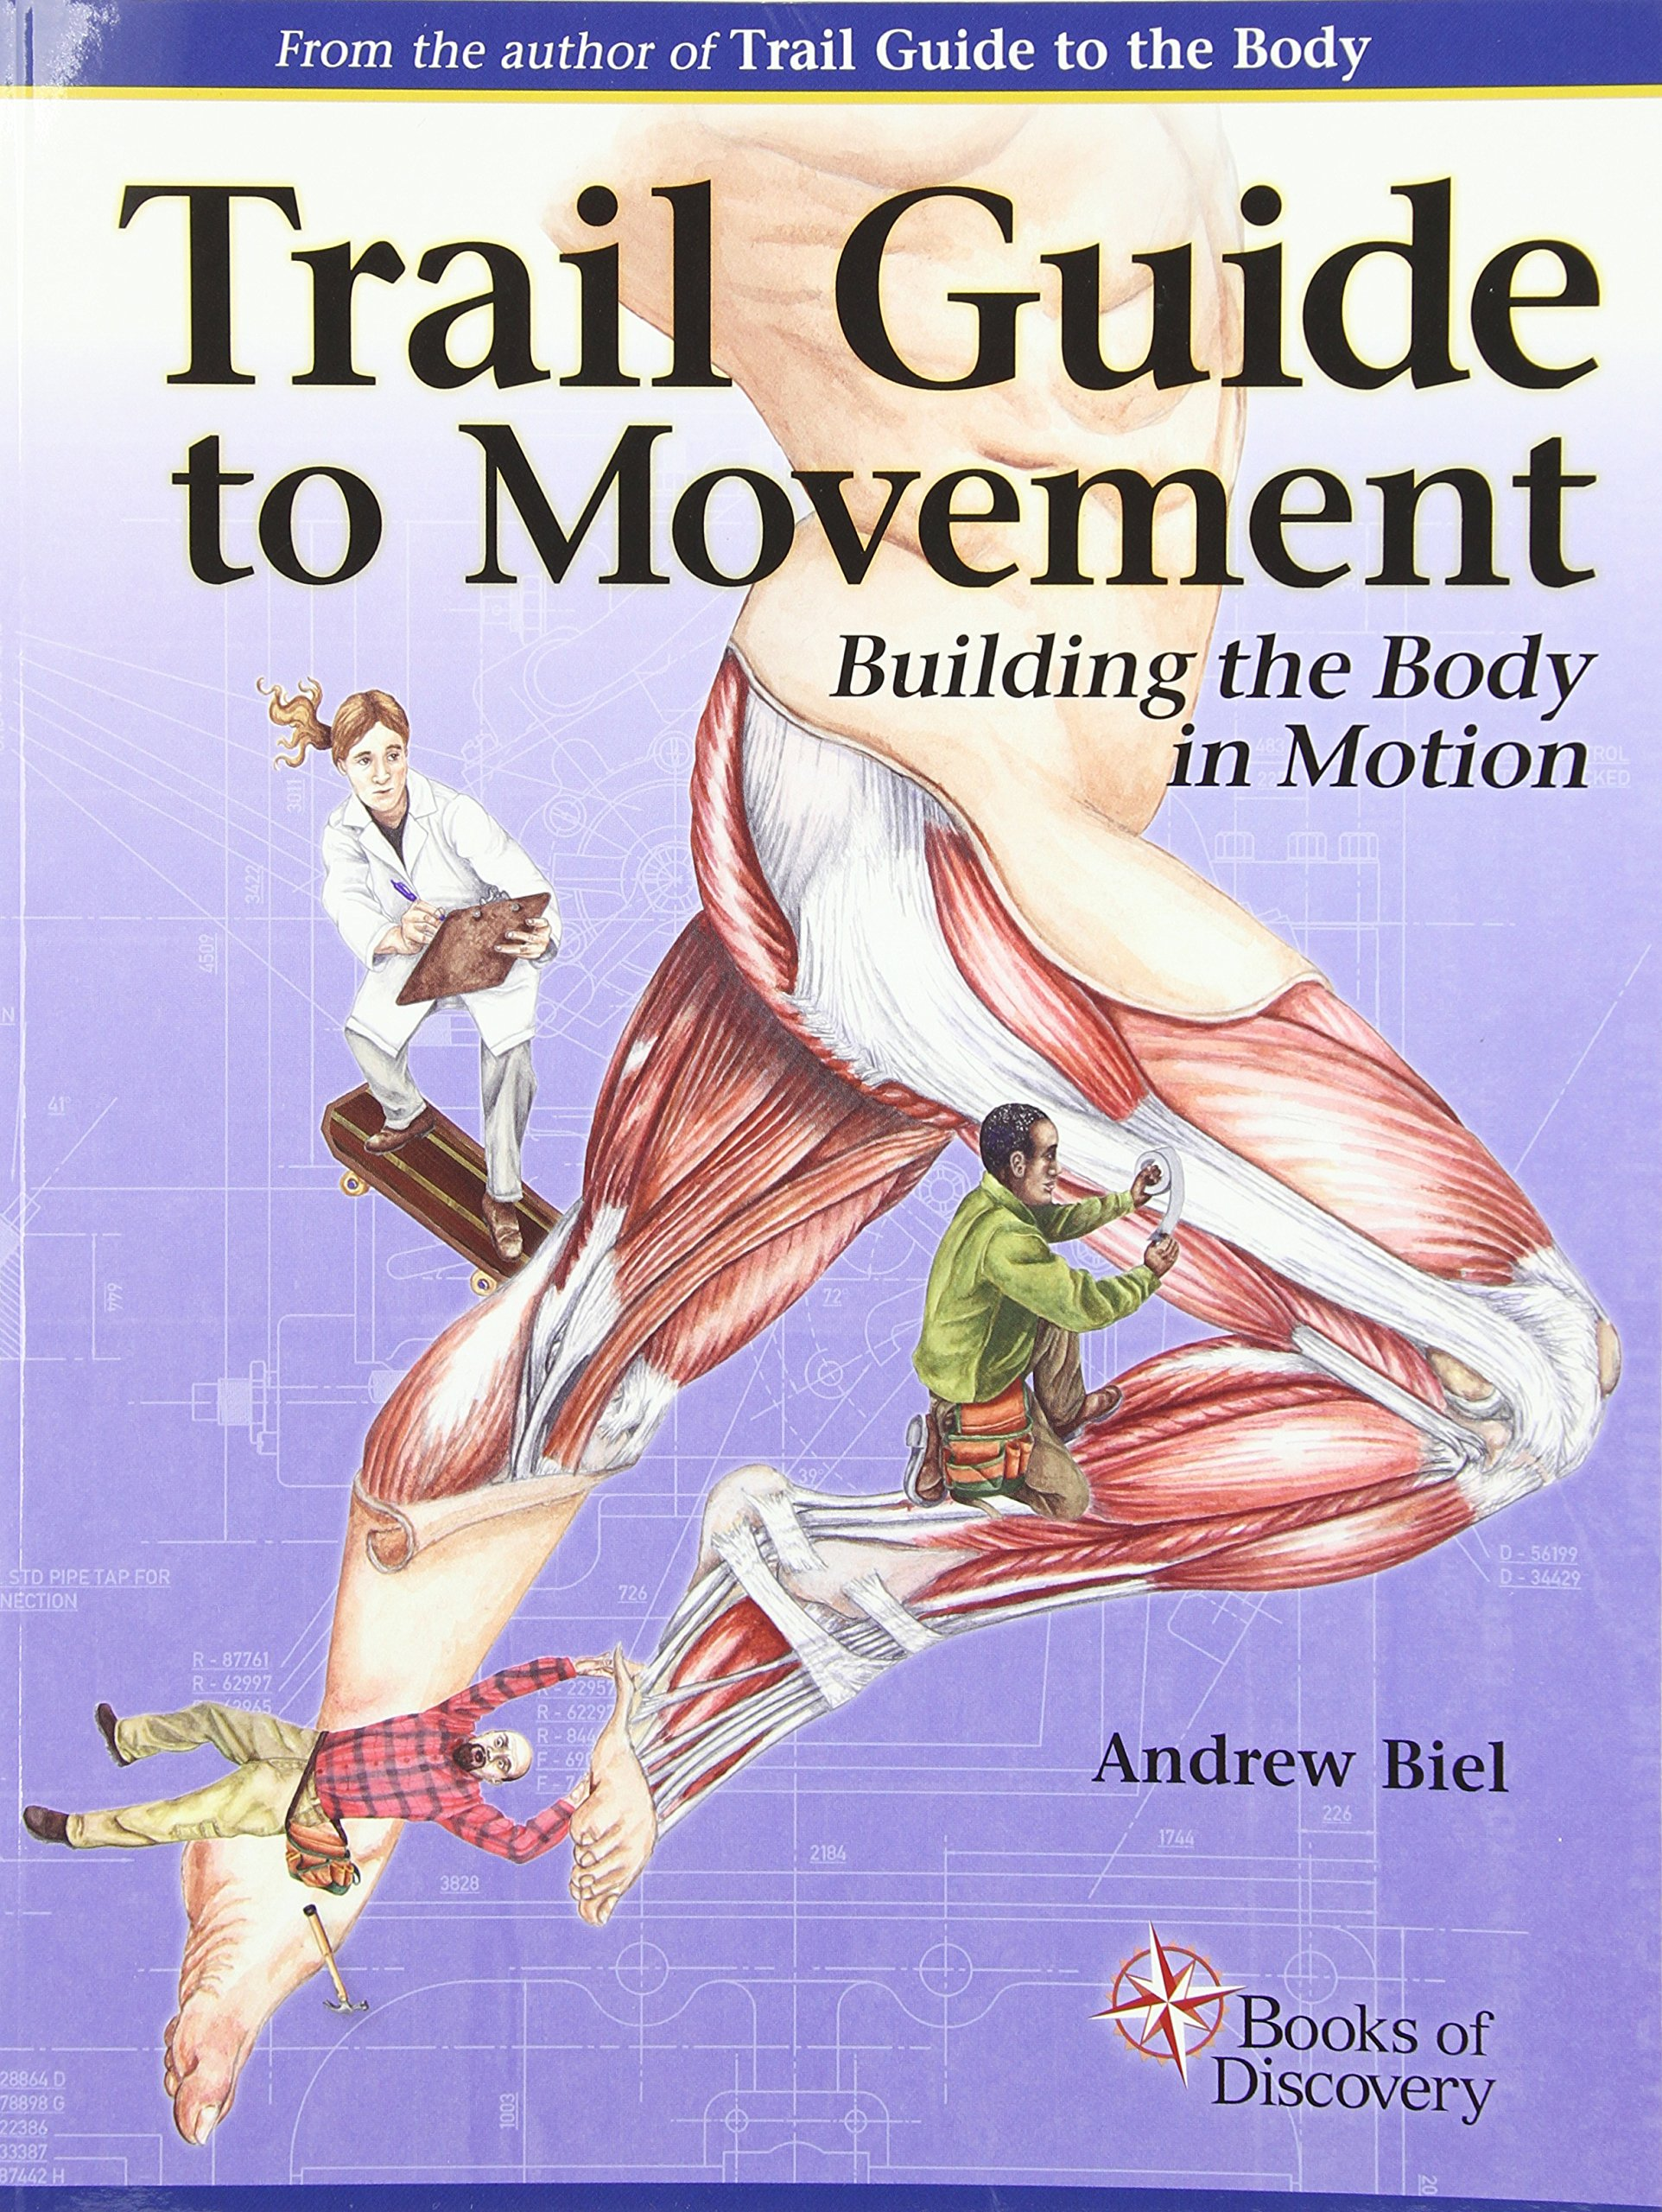 Trail Guide to Movement: Building the Body in Motion